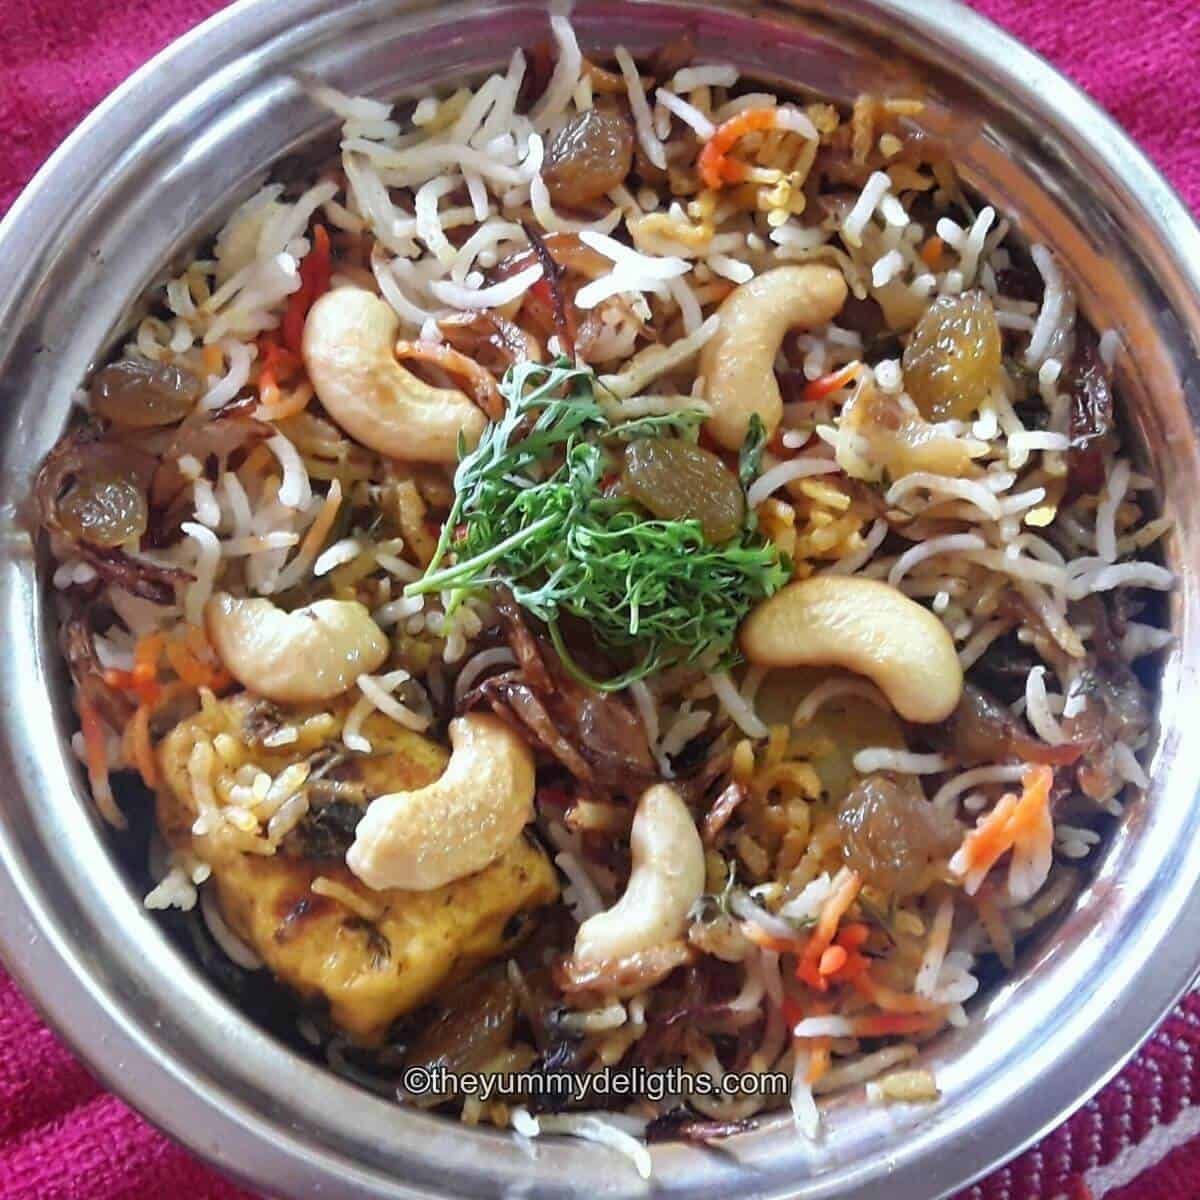 Veg Biryani Hyderabadi Veg Biryani Recipe The Yummy Delights